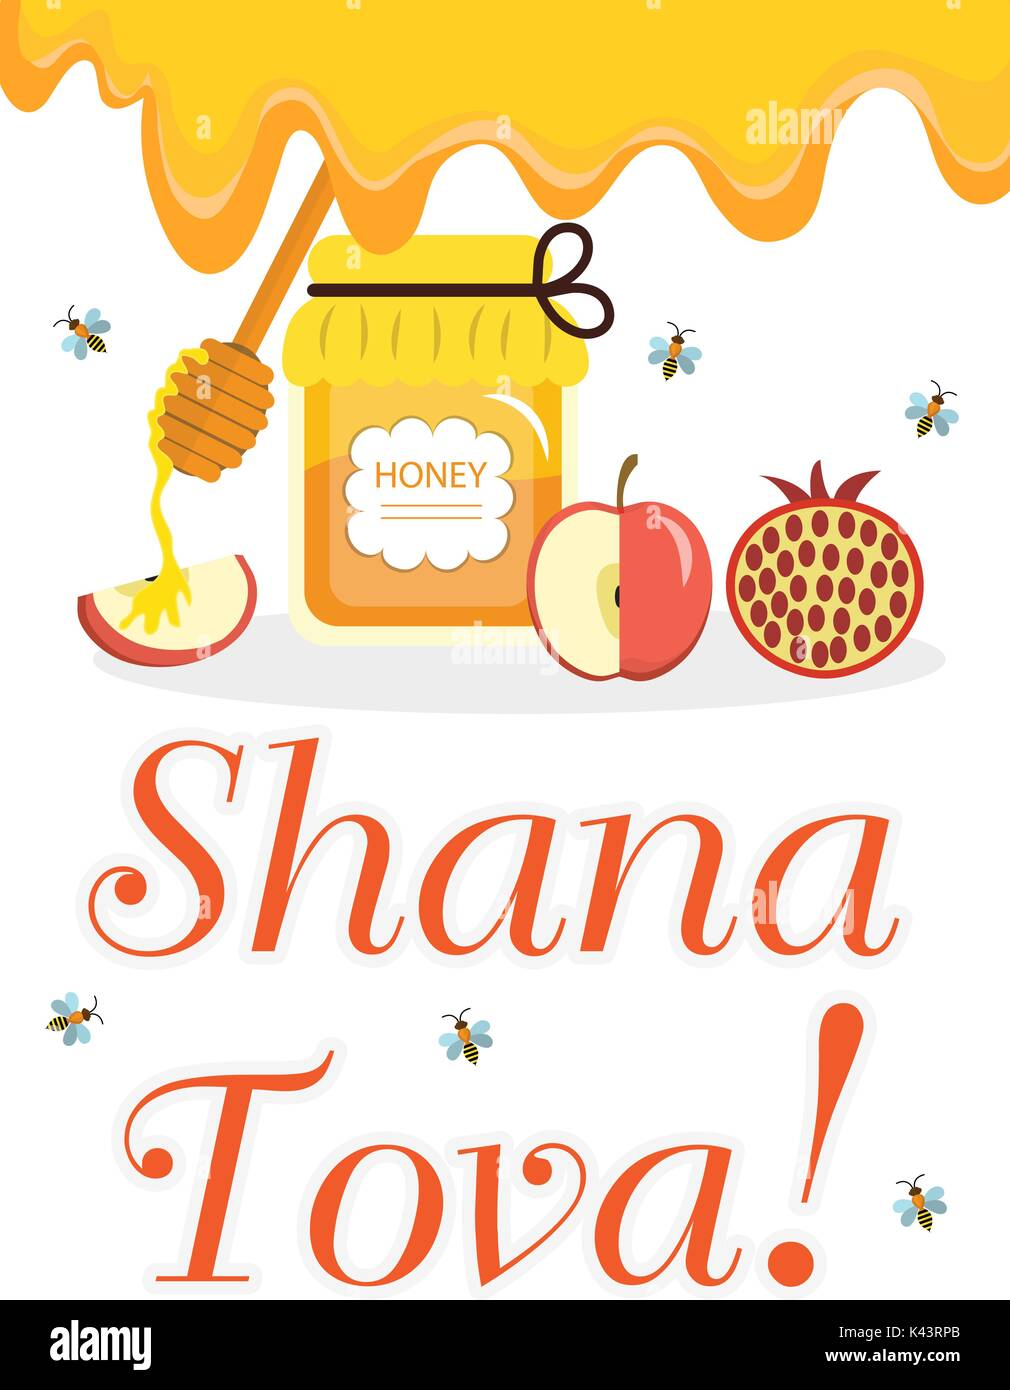 Greeting Card For The Jewish New Year Rosh Hashanah Shana Tova